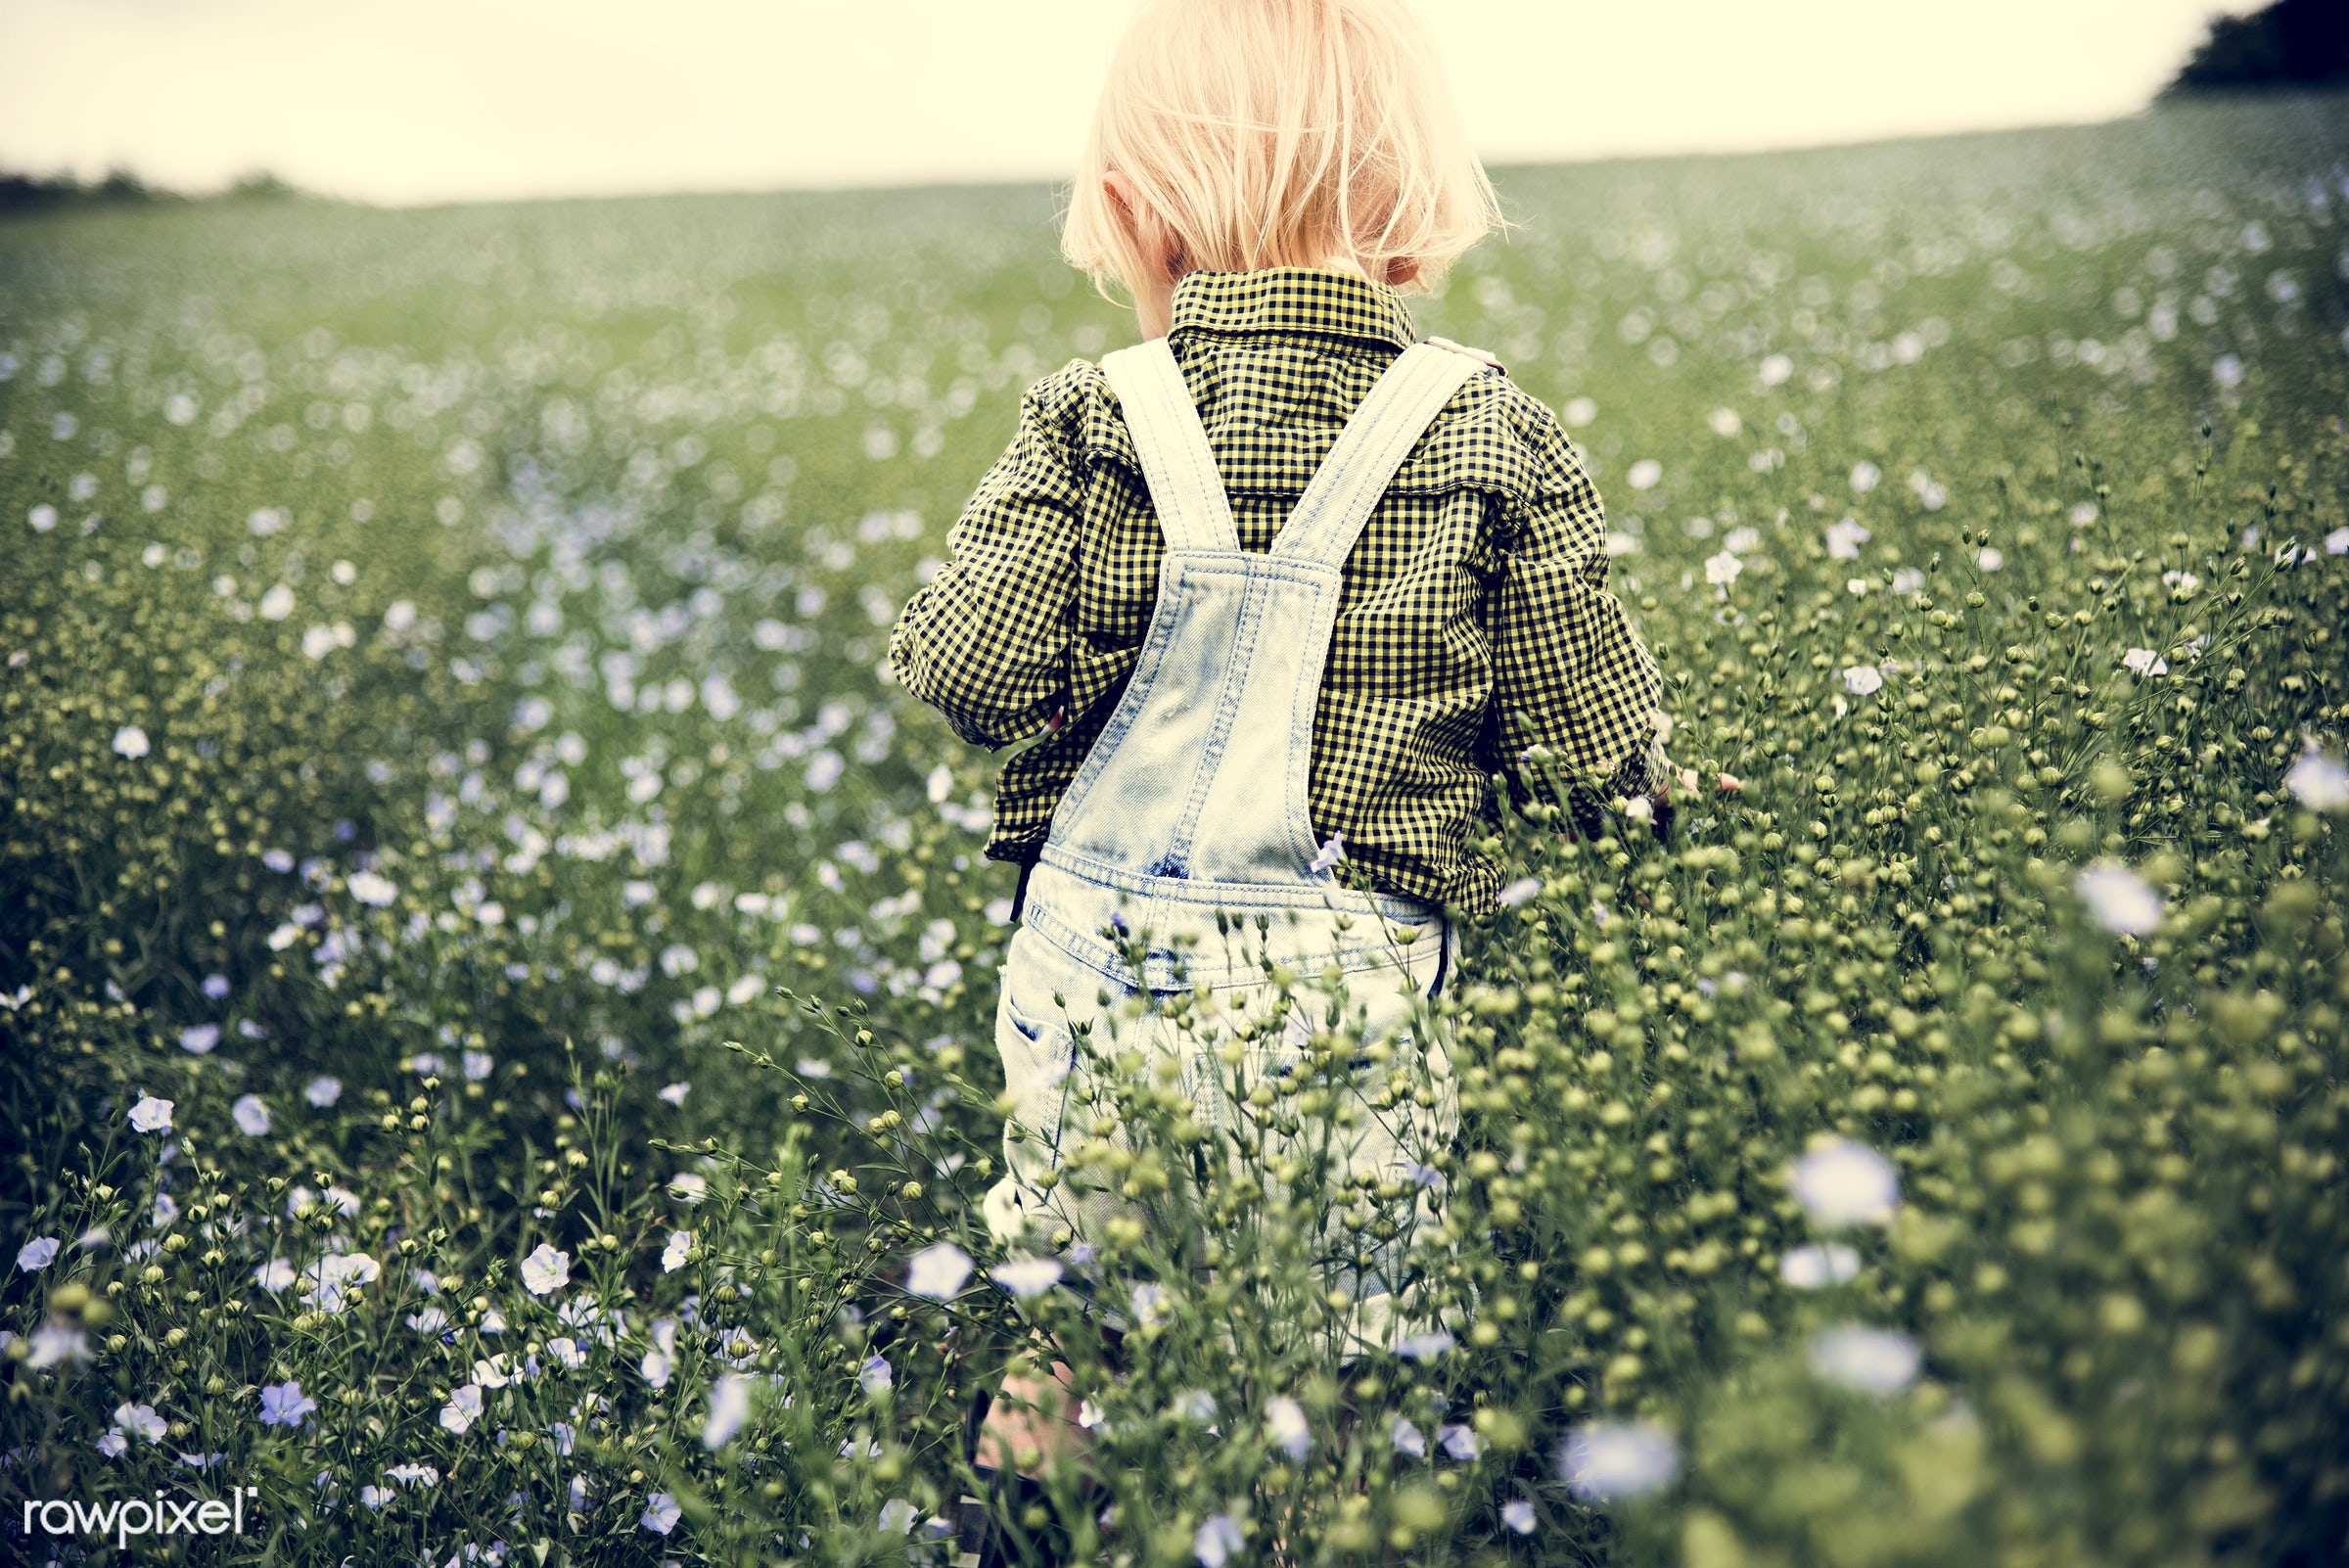 arboretum, backyard, bloom, blooming, botanical, botany, boy, country, countryside, cultivate, cultivating, field, flora,...